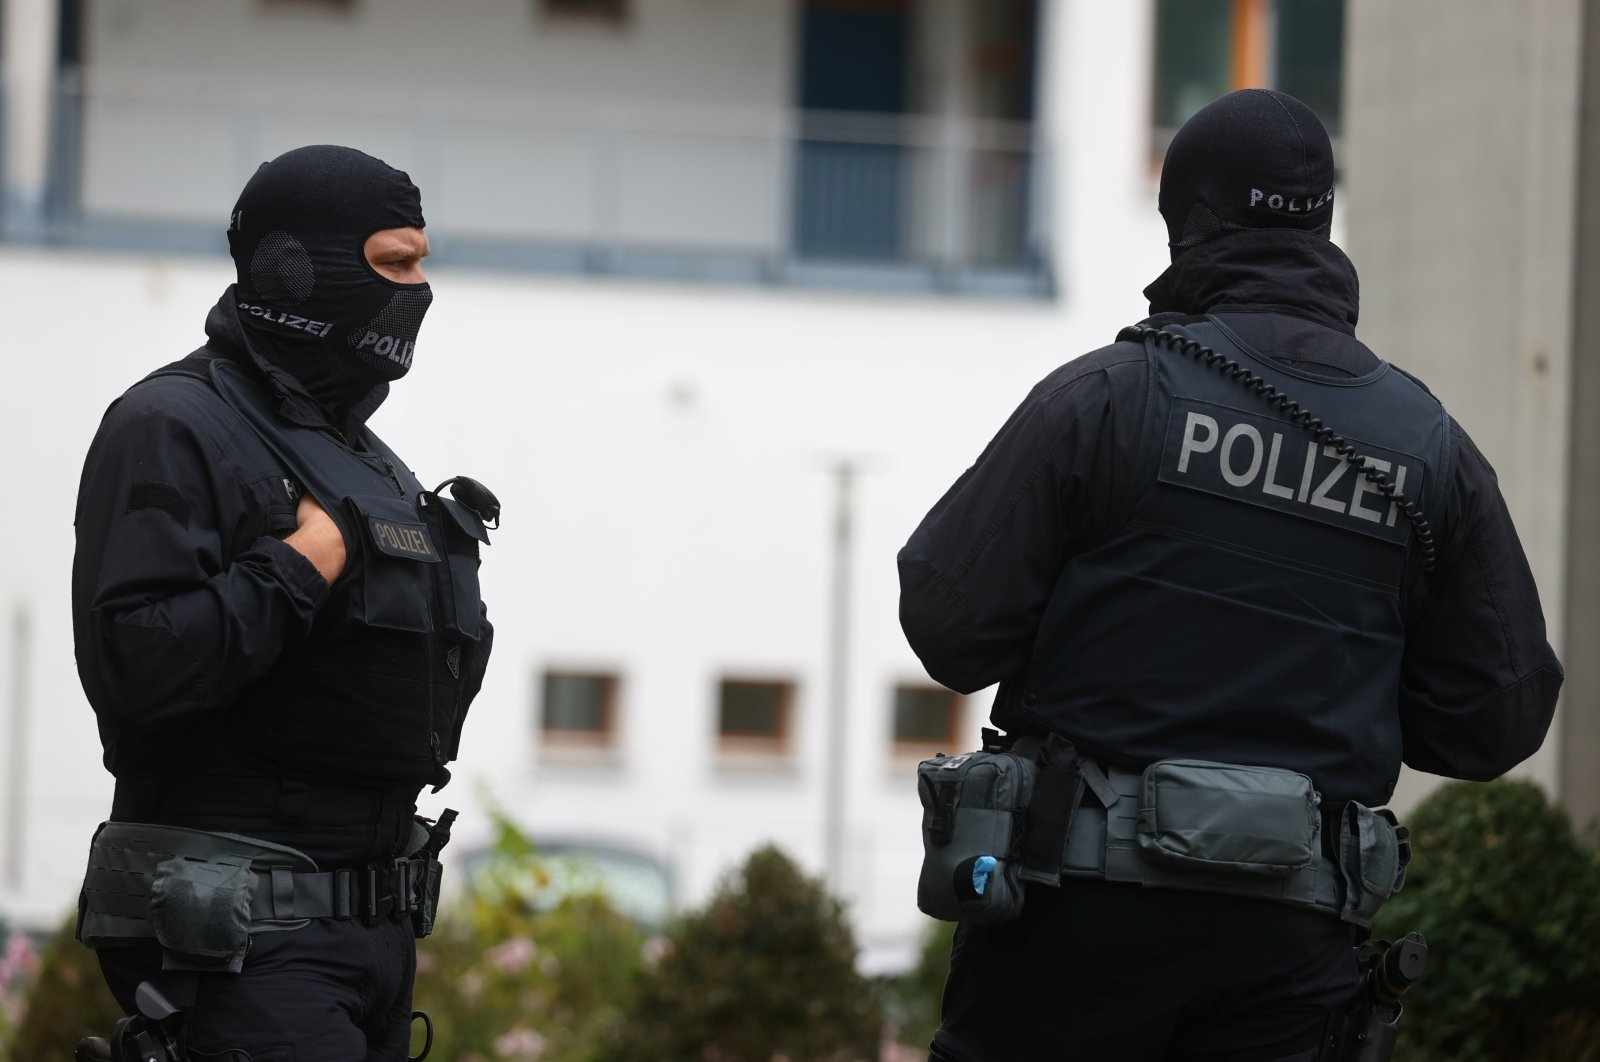 Police secure the area in front of the German Football Association's (DFB) headquarters as German prosecutors and tax authorities search offices of the association as well as homes of current and former DFB officials on suspicion of tax evasion, in Frankfurt, Germany, Oct. 7, 2020. (Reuters Photo)